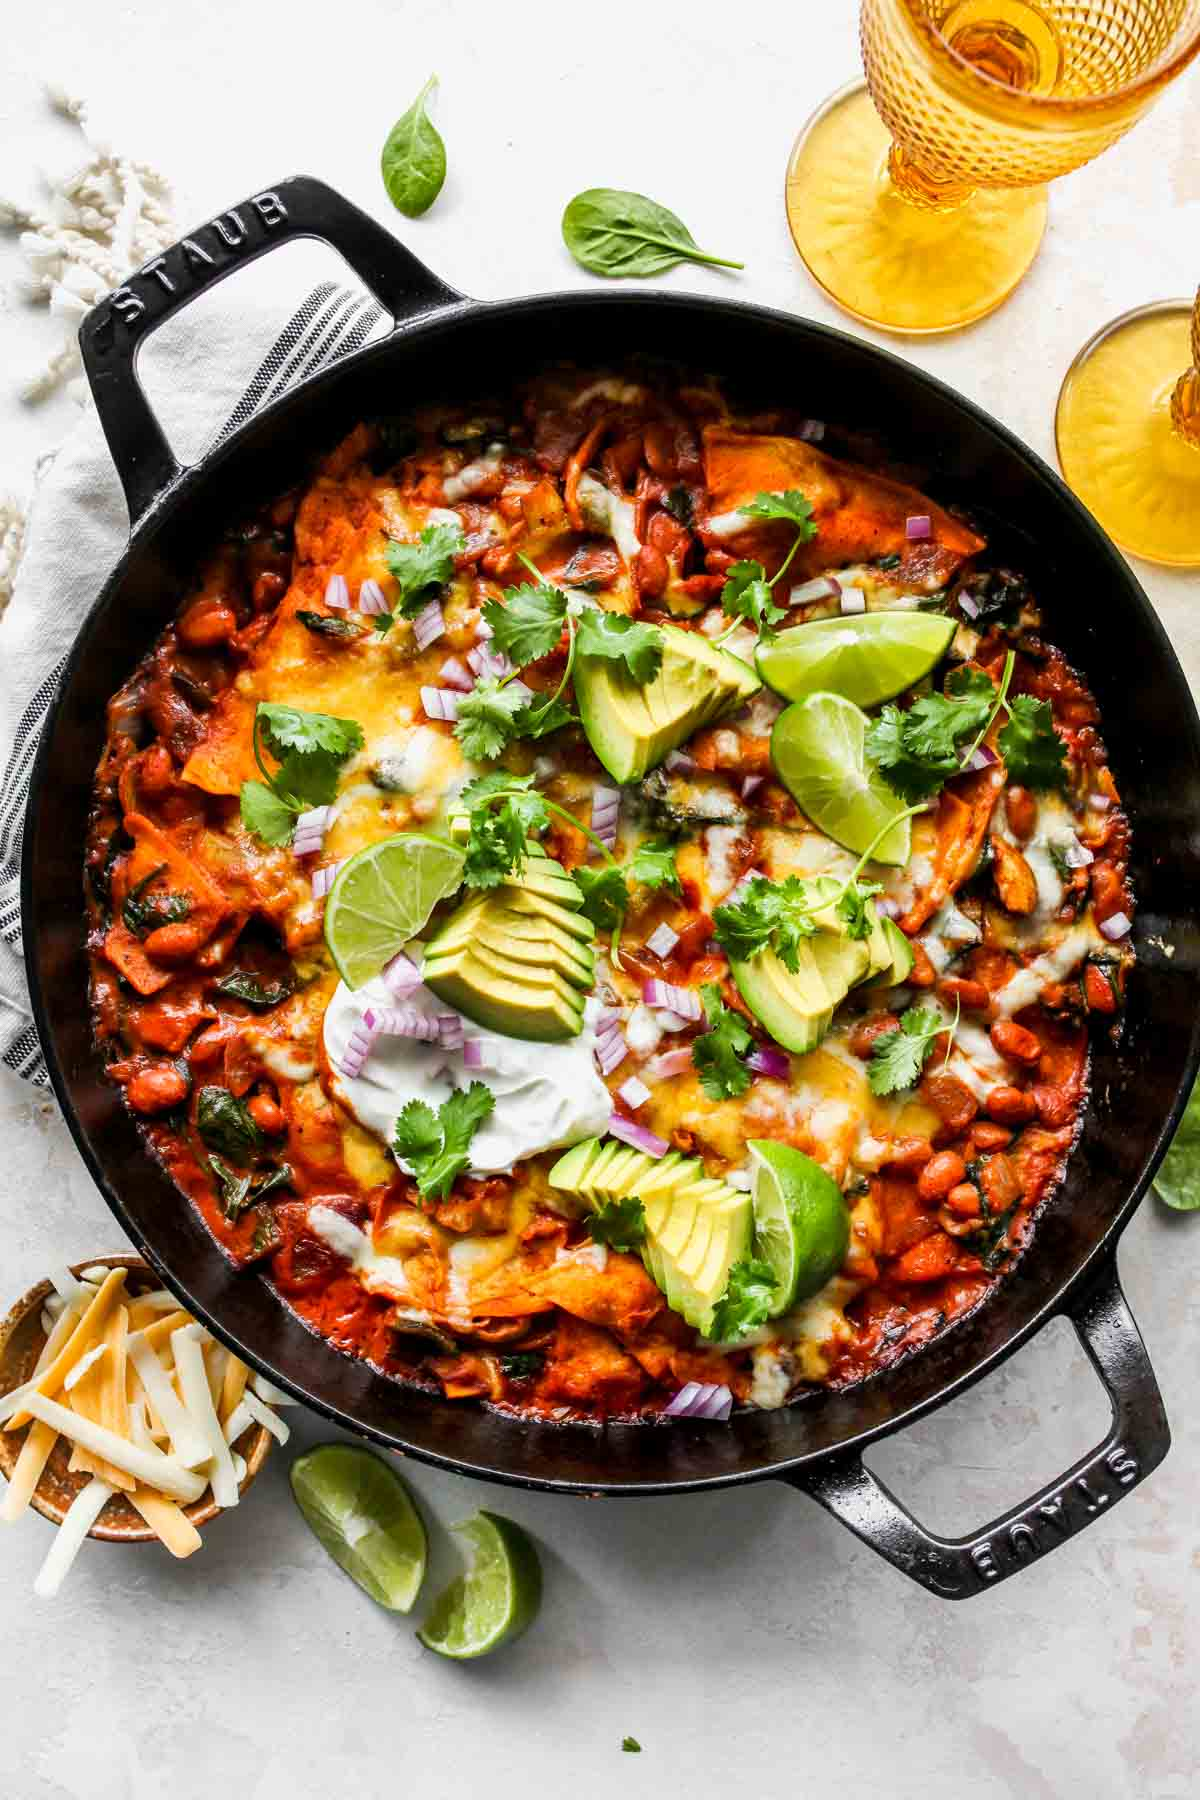 Skillet of vegetable enchiladas topped with avocado slices, cilantro, and lime wedges